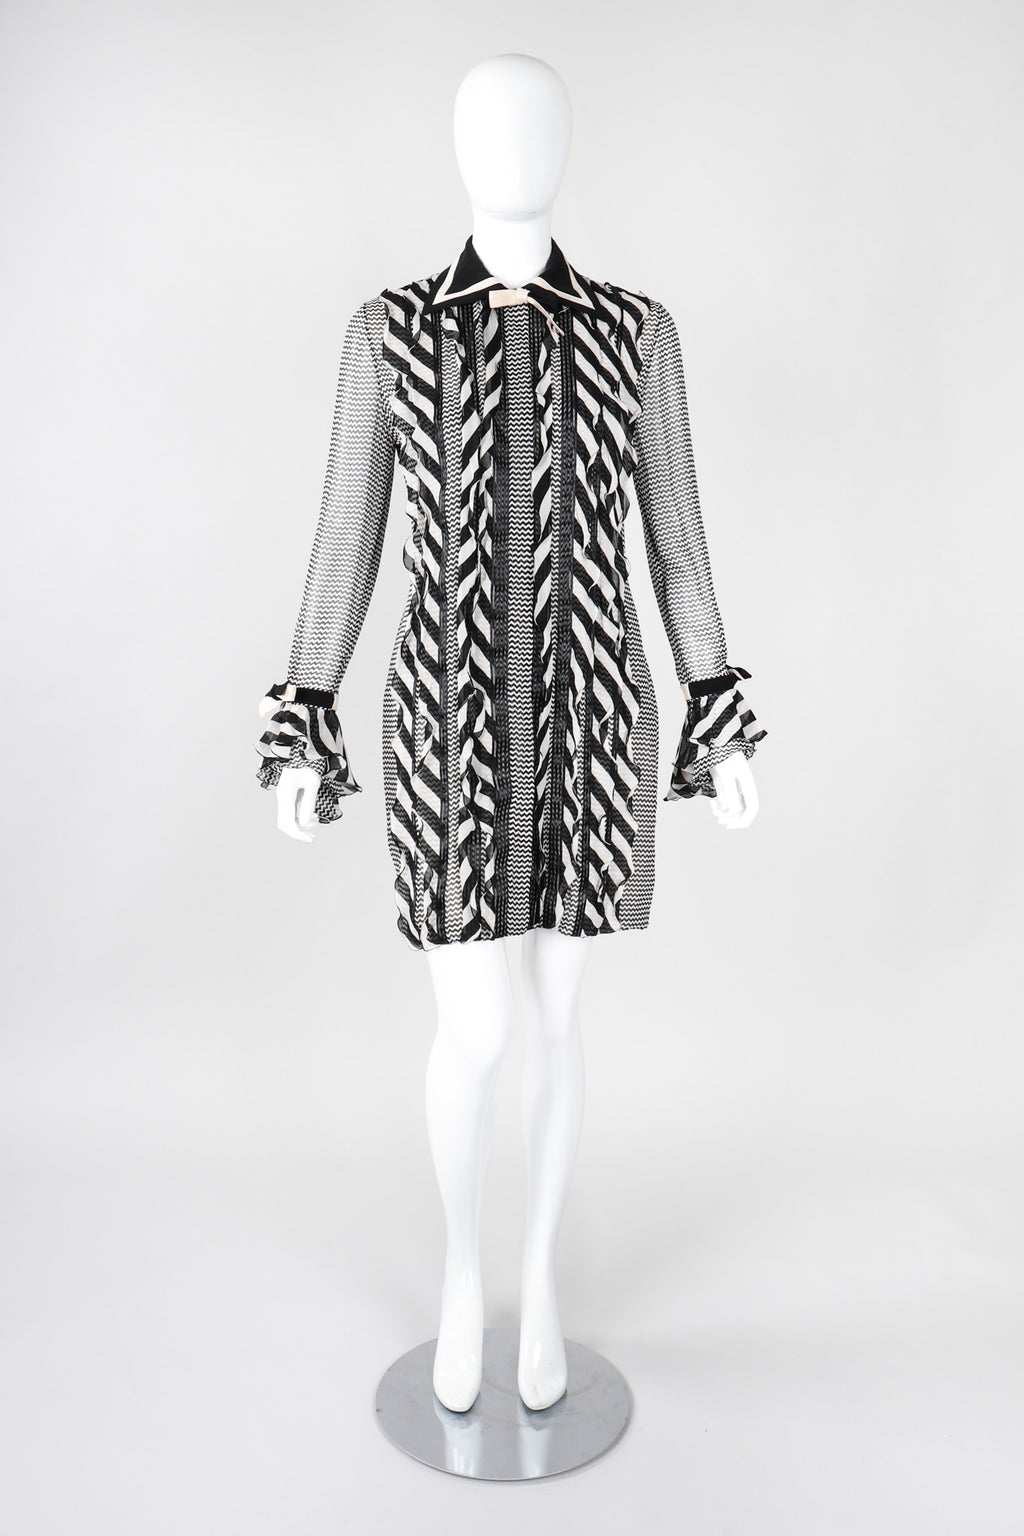 a34bf6d4 Recess Los Angeles Vintage Gianni Versace Silk Chiffon Chevron Stripe Shirt  Dress